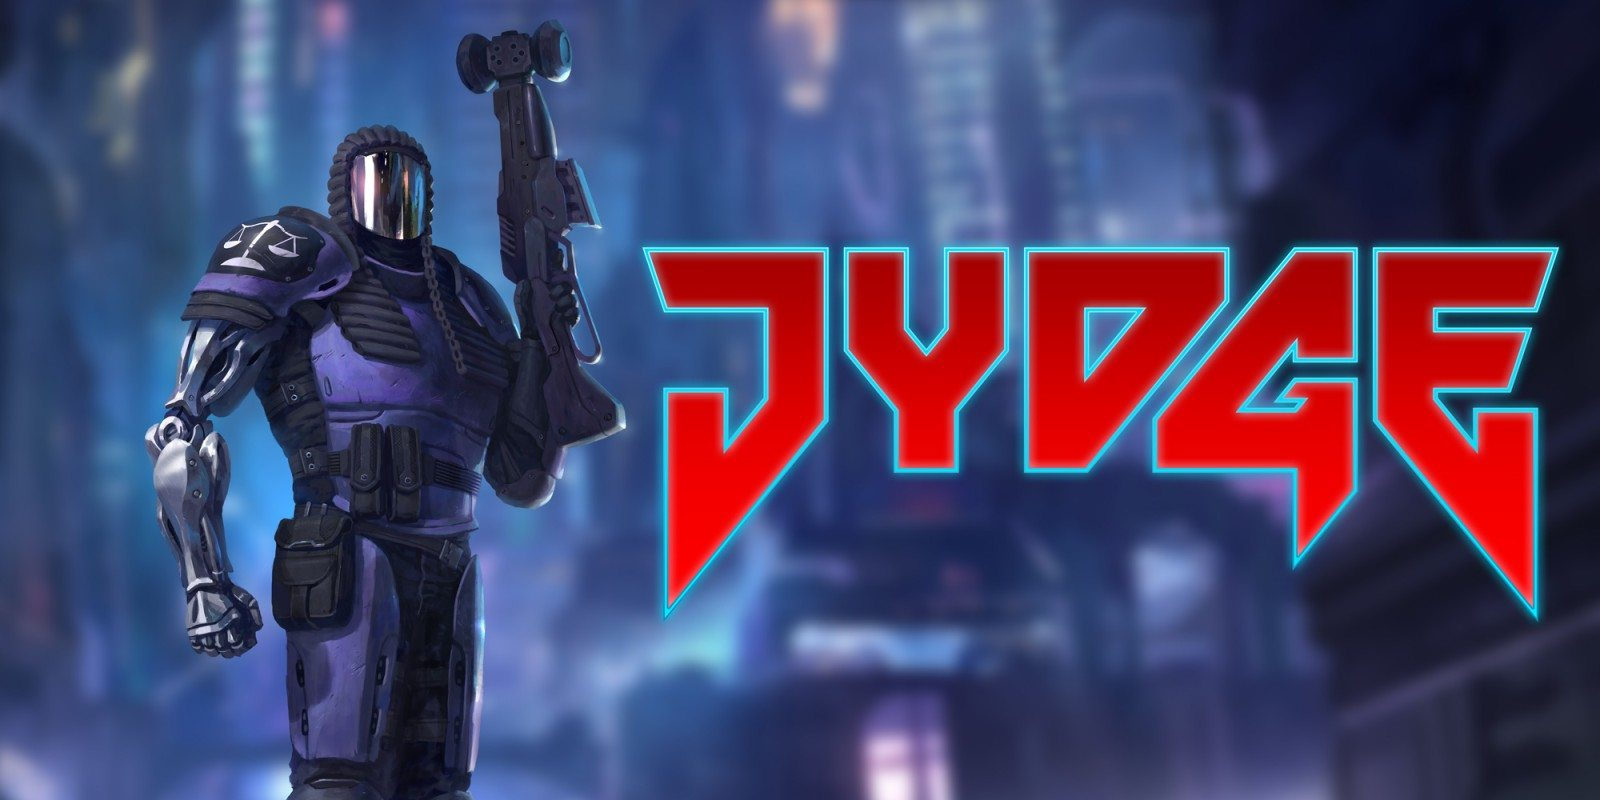 Future Shooter Jydge ahora disponible para Android en Google Play